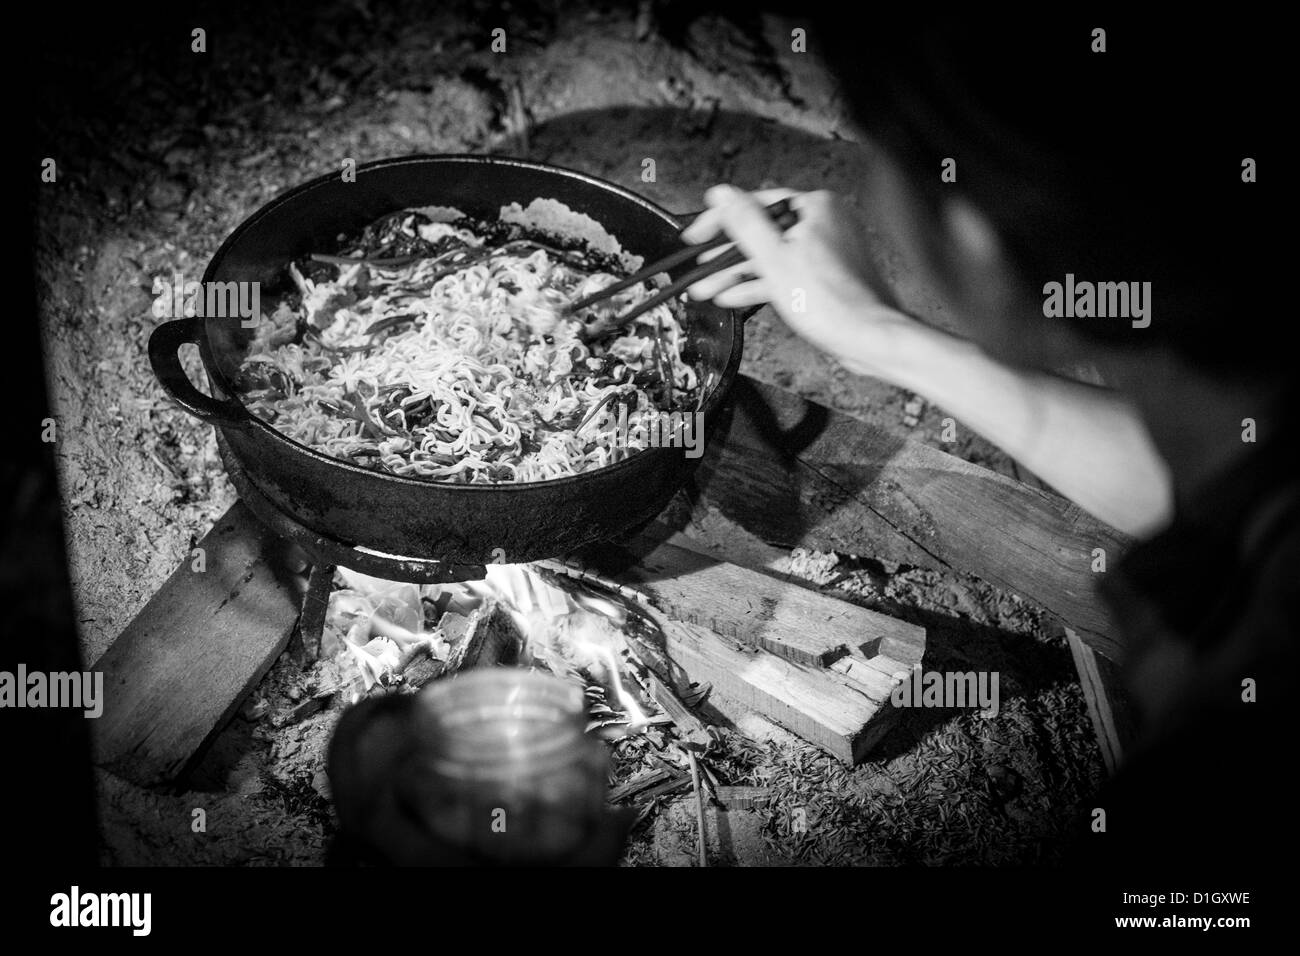 Vegetable stir fry over a wooden fire - Stock Image